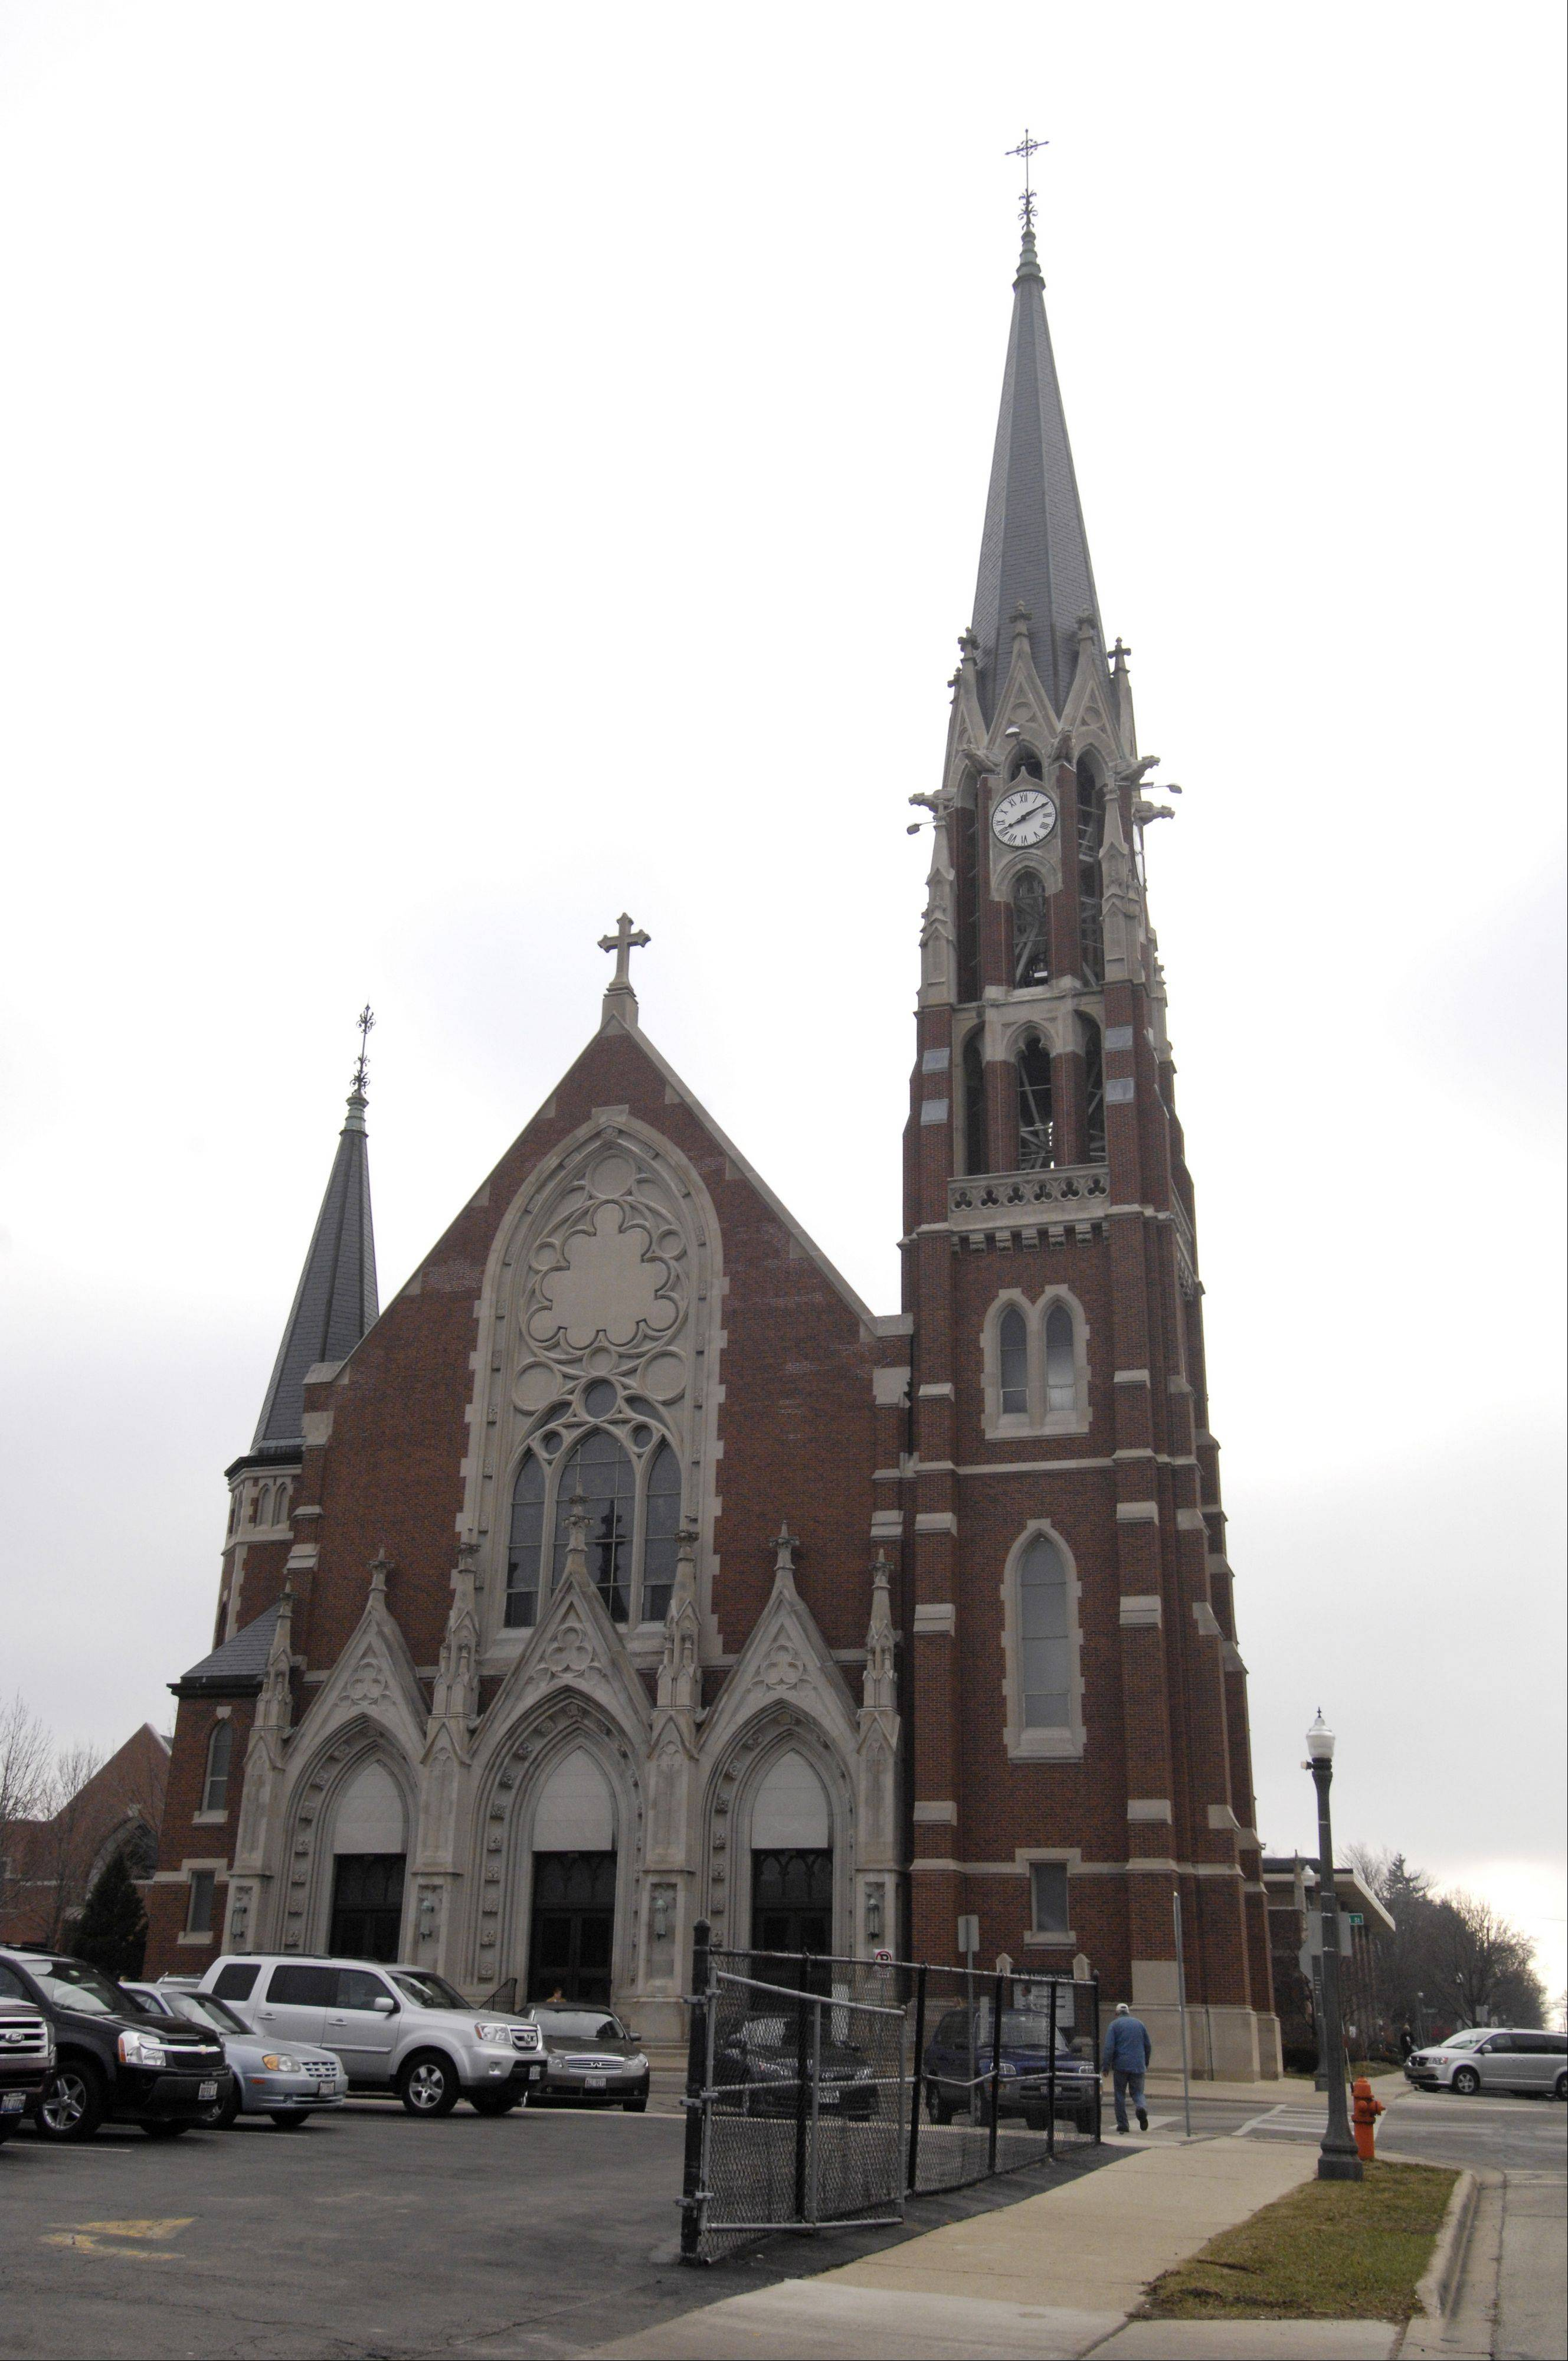 For the first time in nearly four decades, parishioners at Ss. Peter and Paul Catholic Church in Naperville were welcomed to Easter Mass on Sunday with the sound of real church bells ringing.